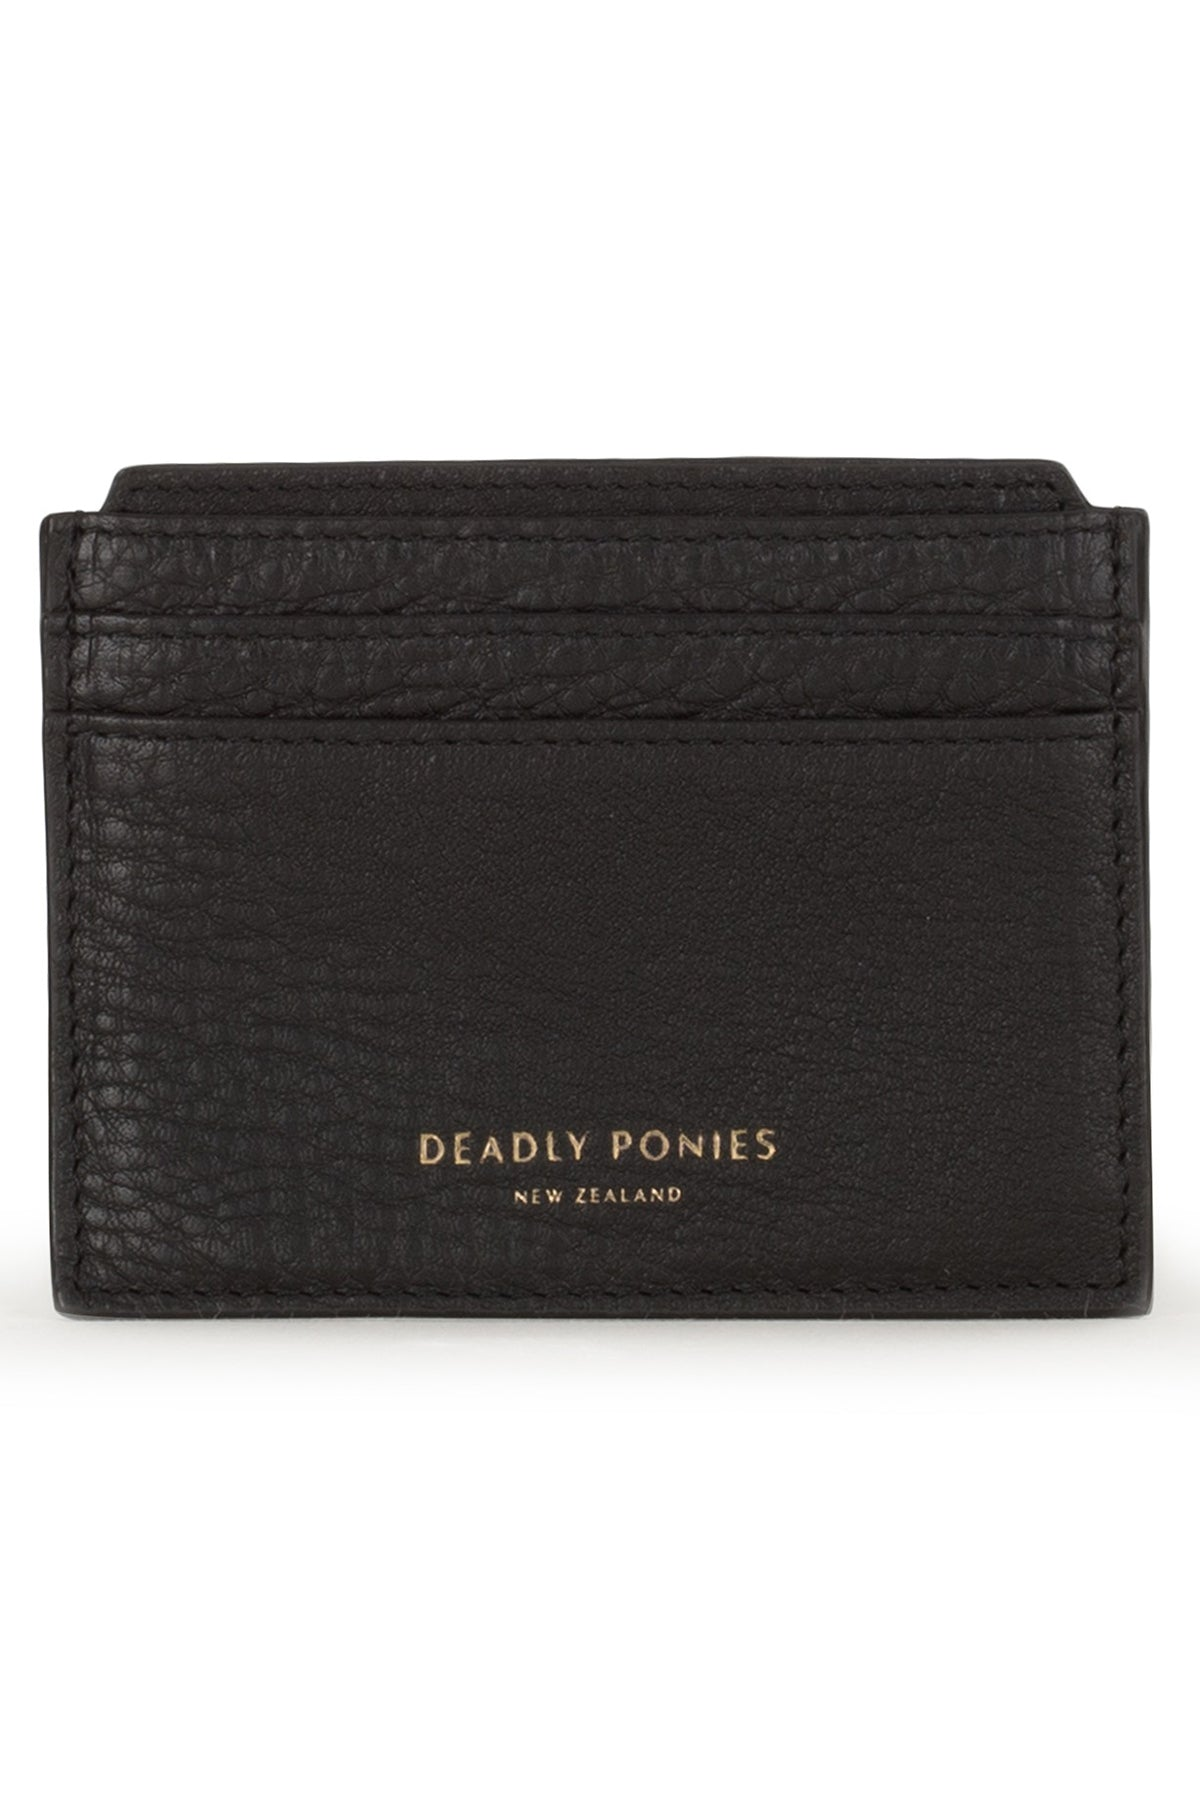 Deadly Ponies Card File // Black